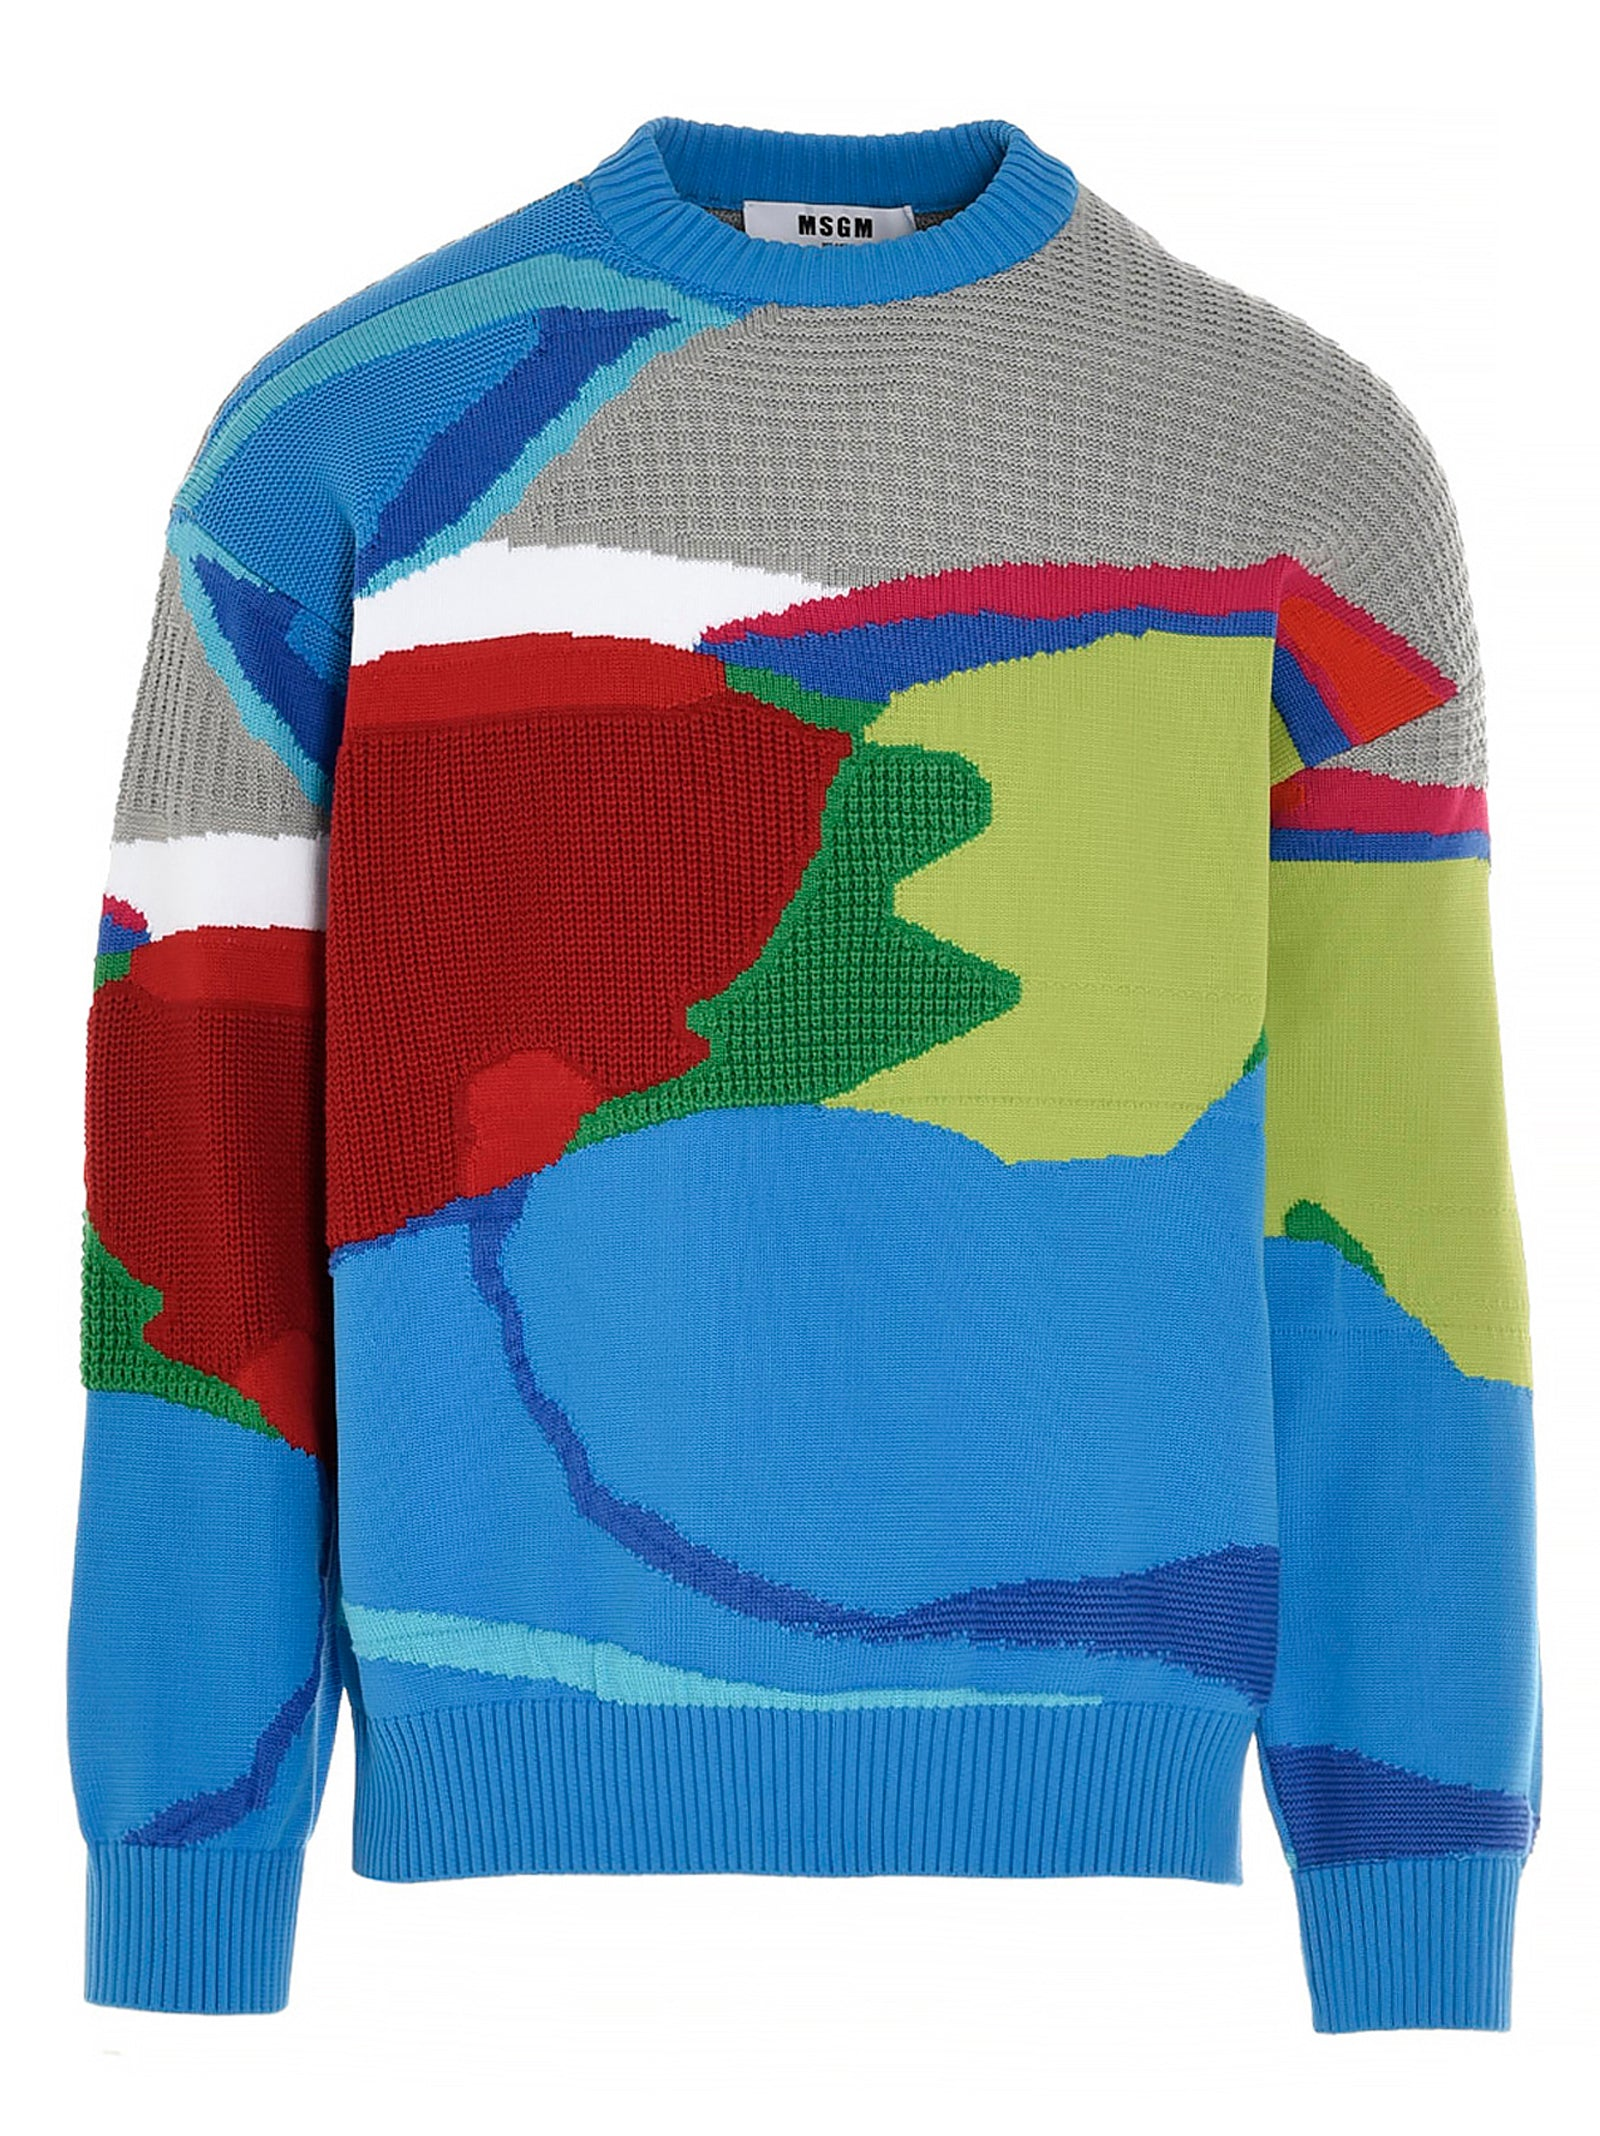 Msgm Cottons MSGM ABSTRACT PATTERNED KNIT JUMPER